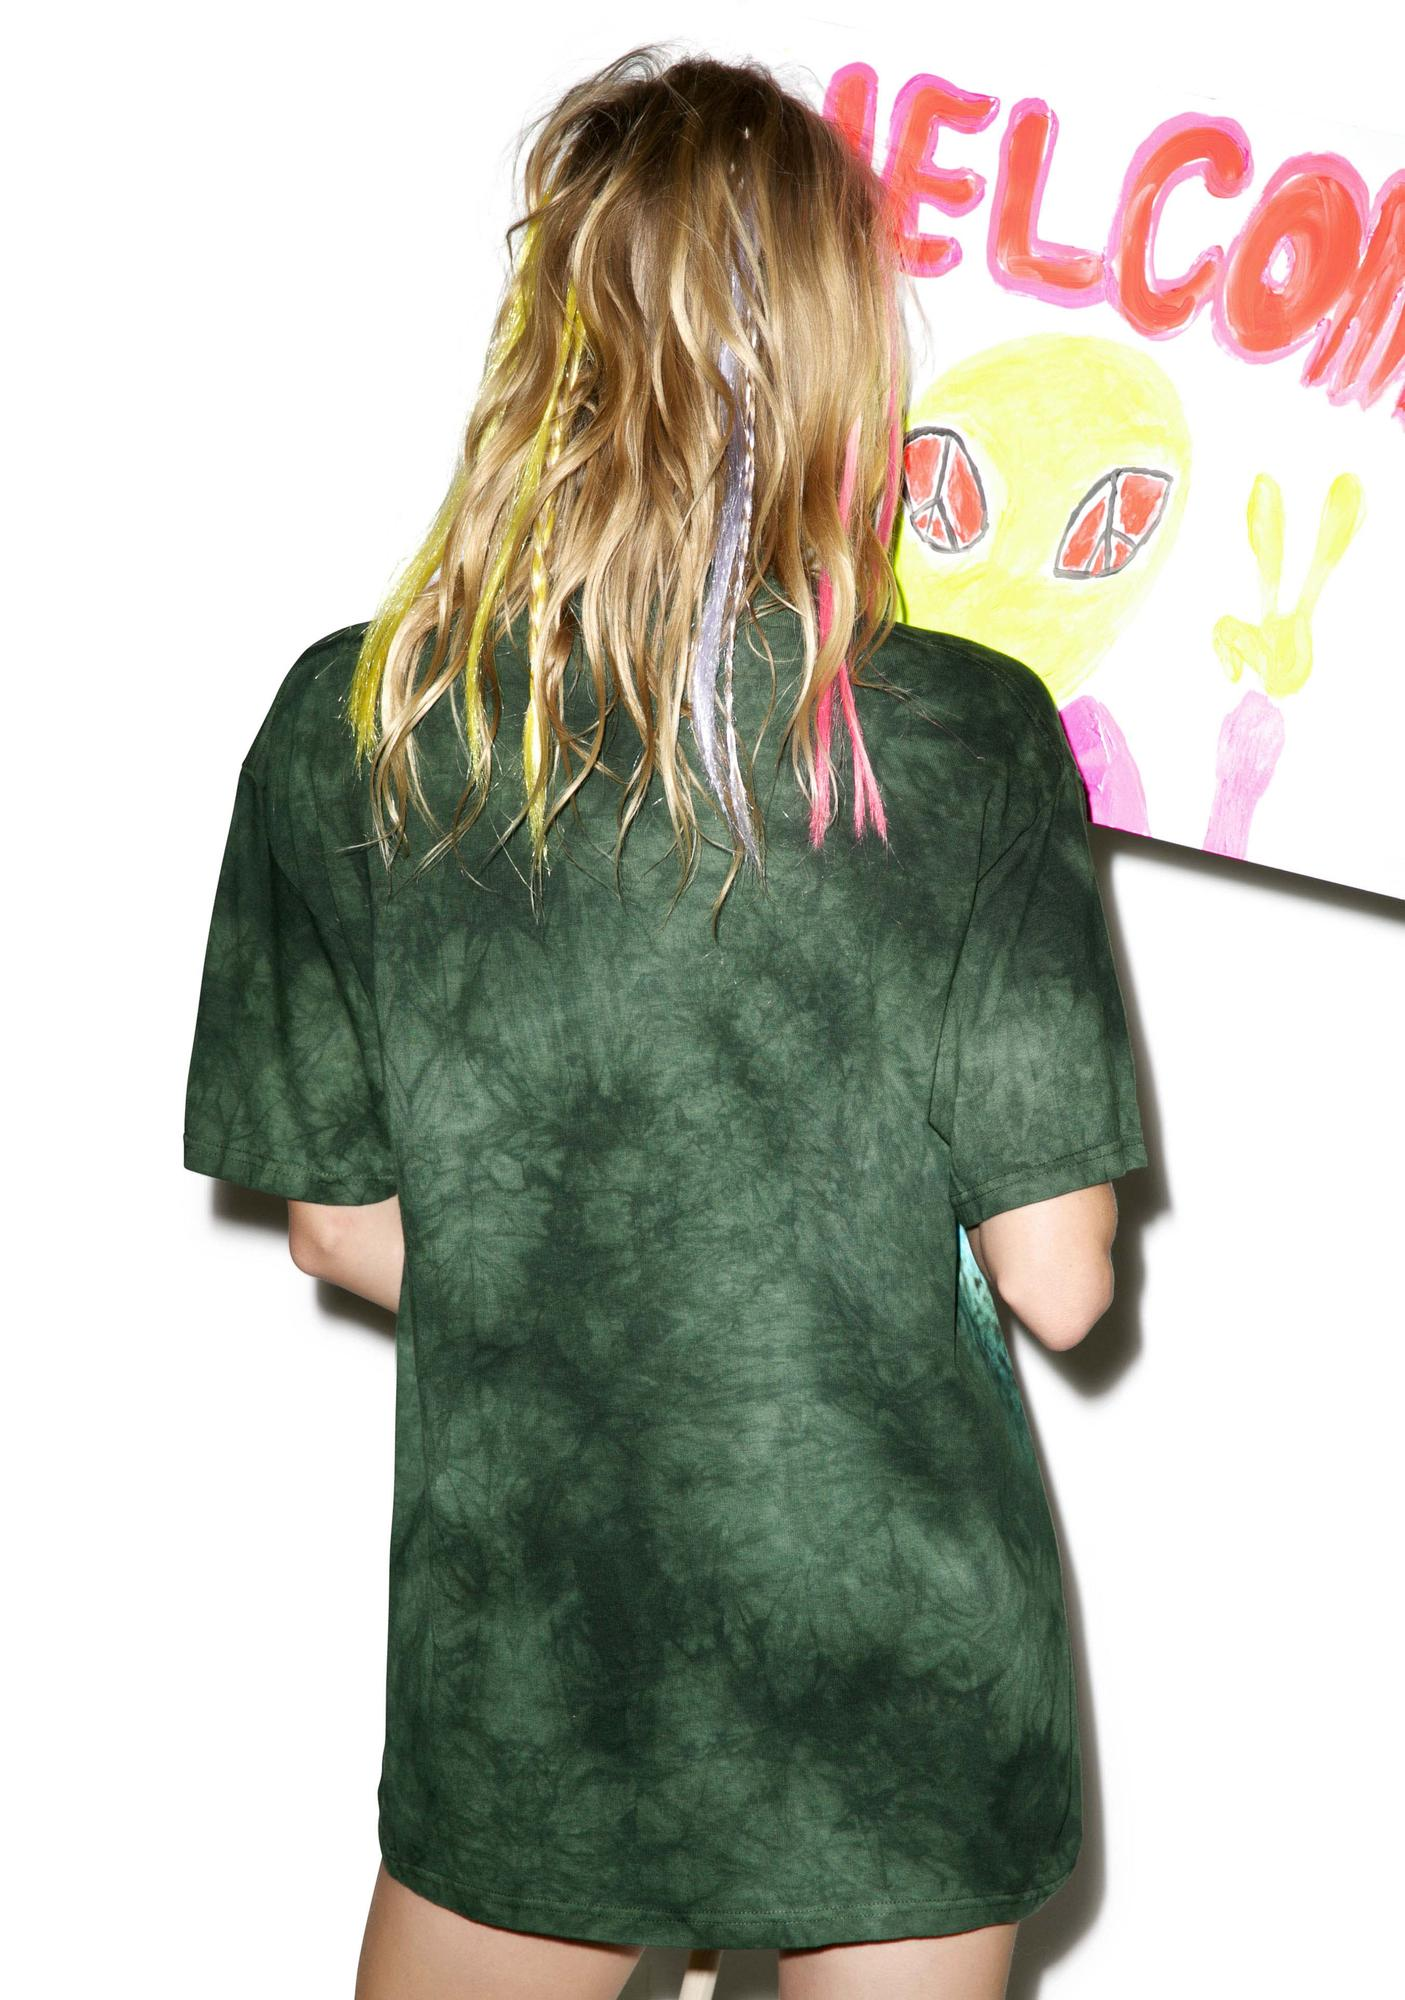 Herbal Re-Leaf Tie Dye Tee